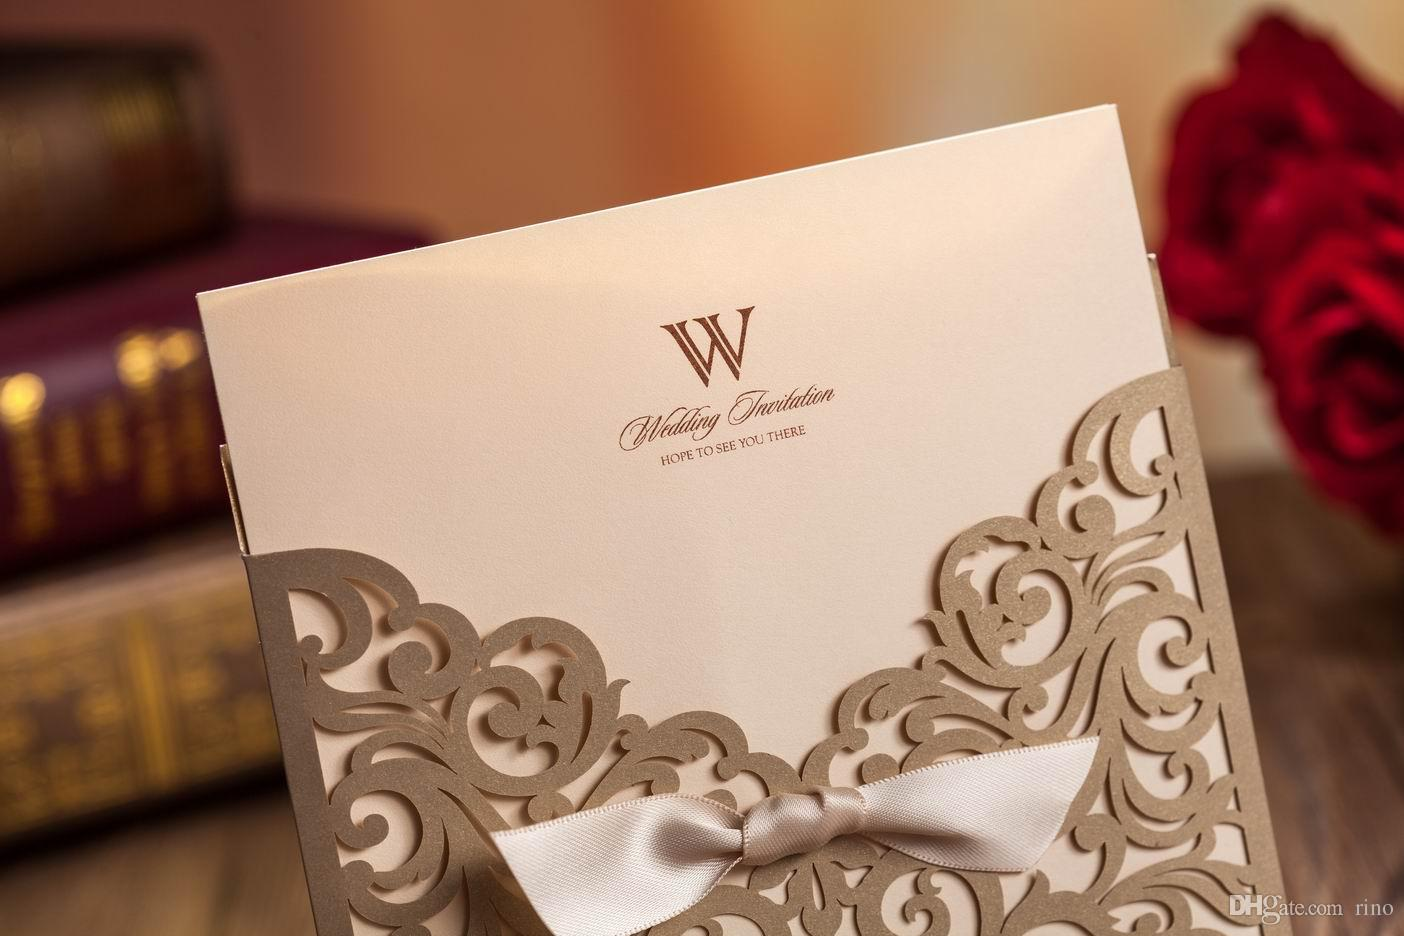 Invitation Cards For Wedding: Inspiring Weddings